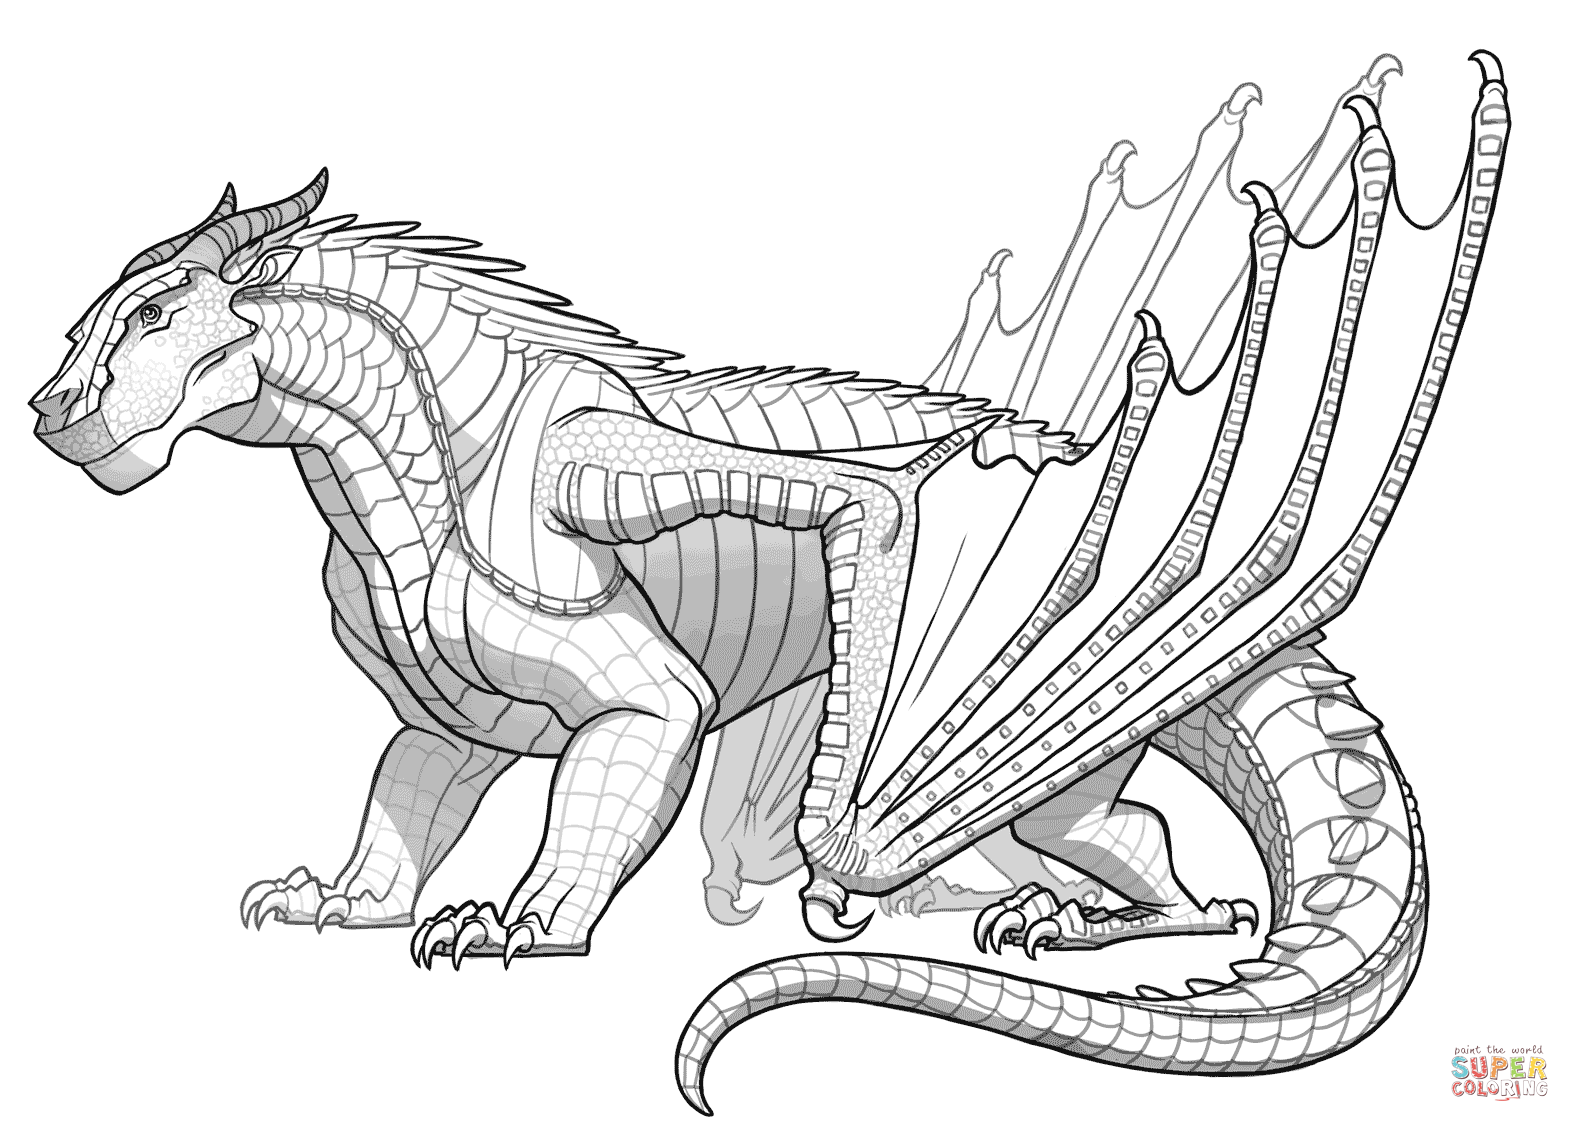 Mudwing Dragon From Wings Of Fire Coloring Page Free Printable Coloring Pages Zoo Animal Coloring Pages Dragon Coloring Page Pokemon Coloring Pages